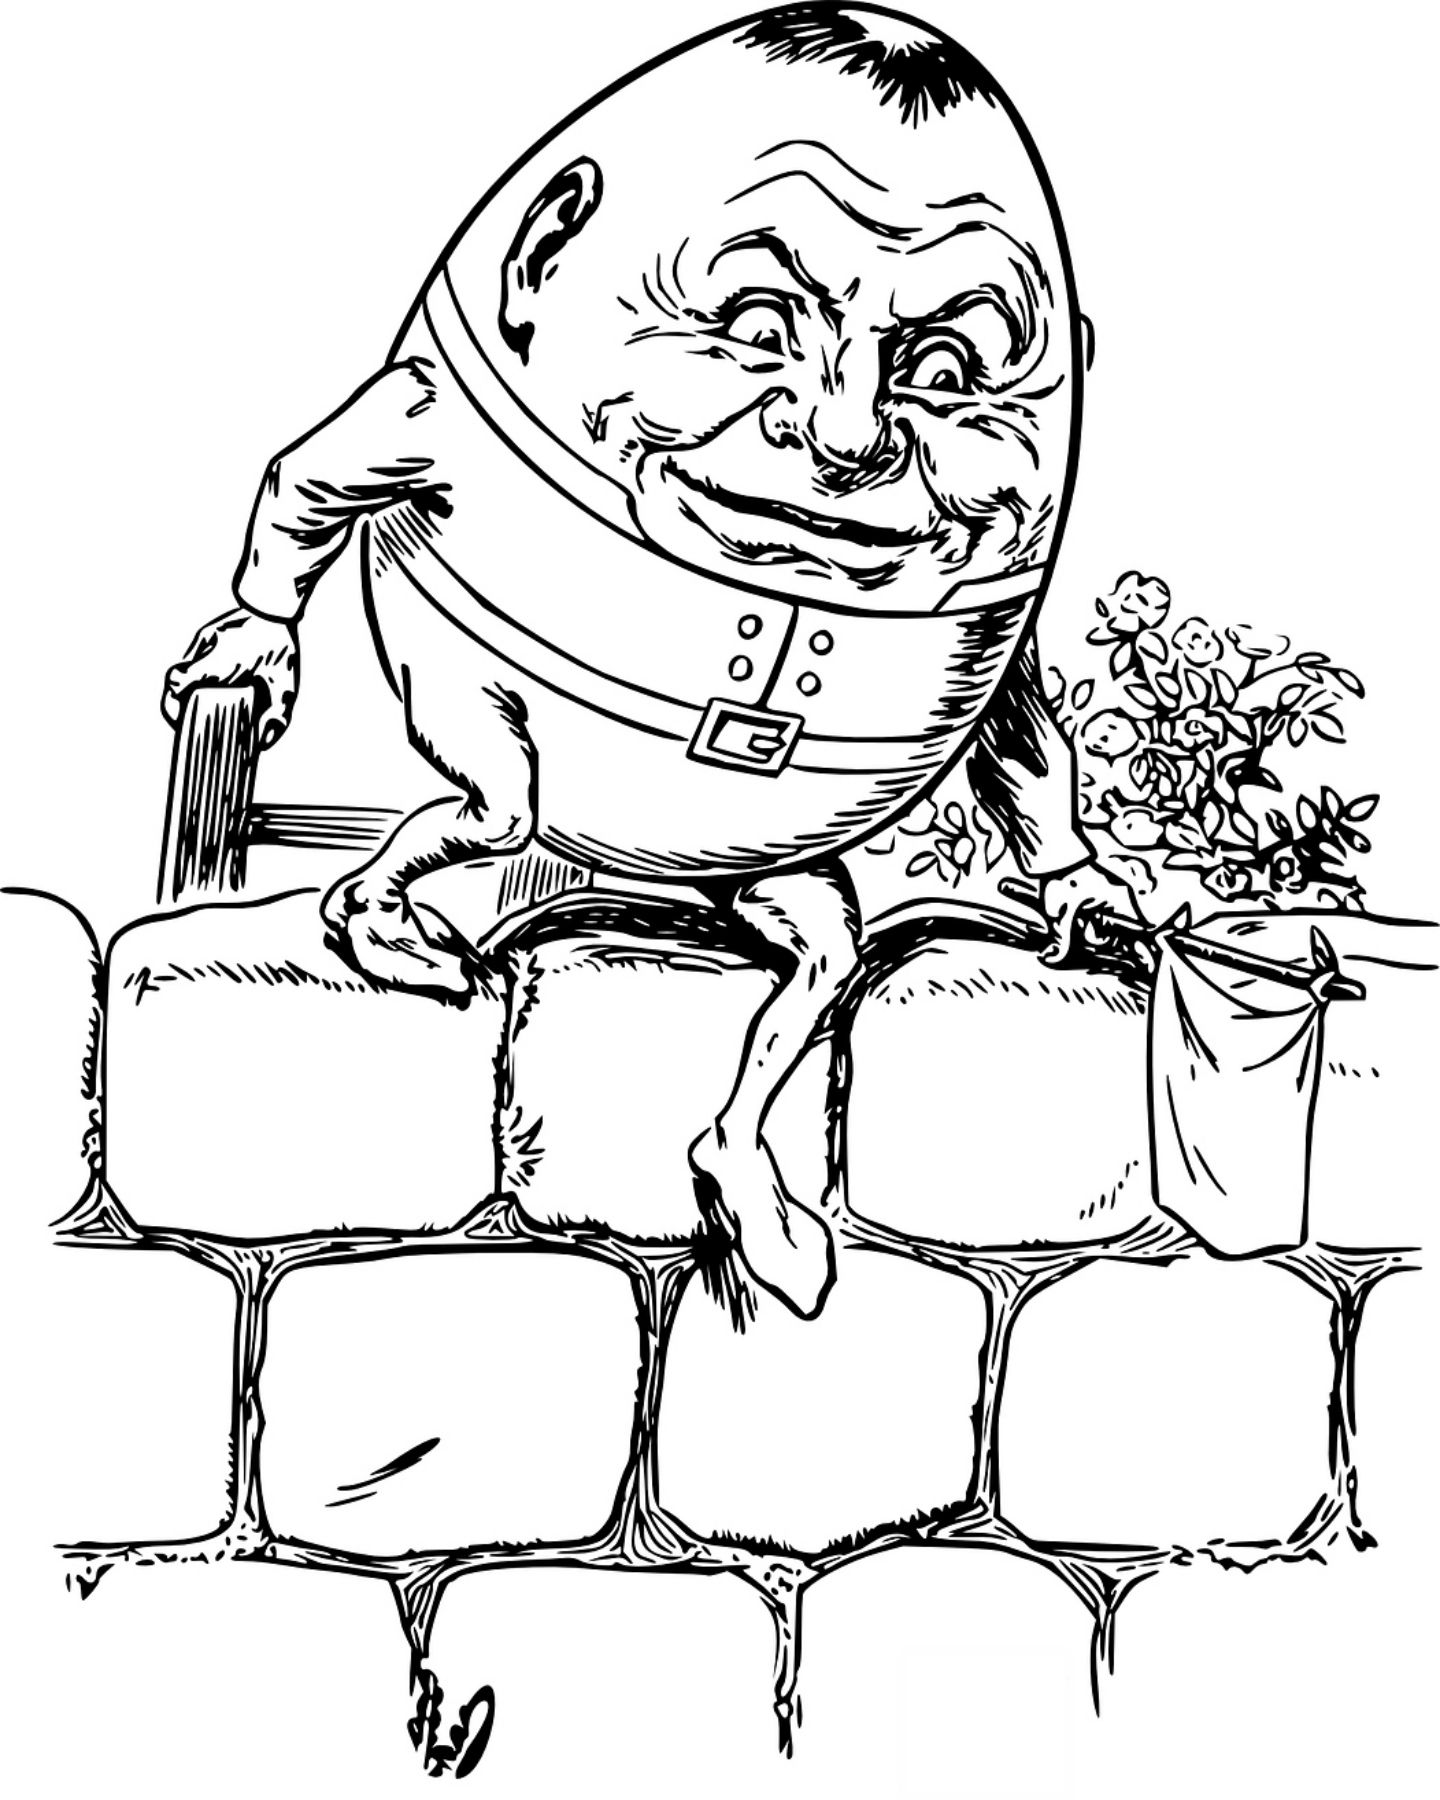 Humpty Dumpty Nursery Rhyme Coloring Page | Books and Movies ...